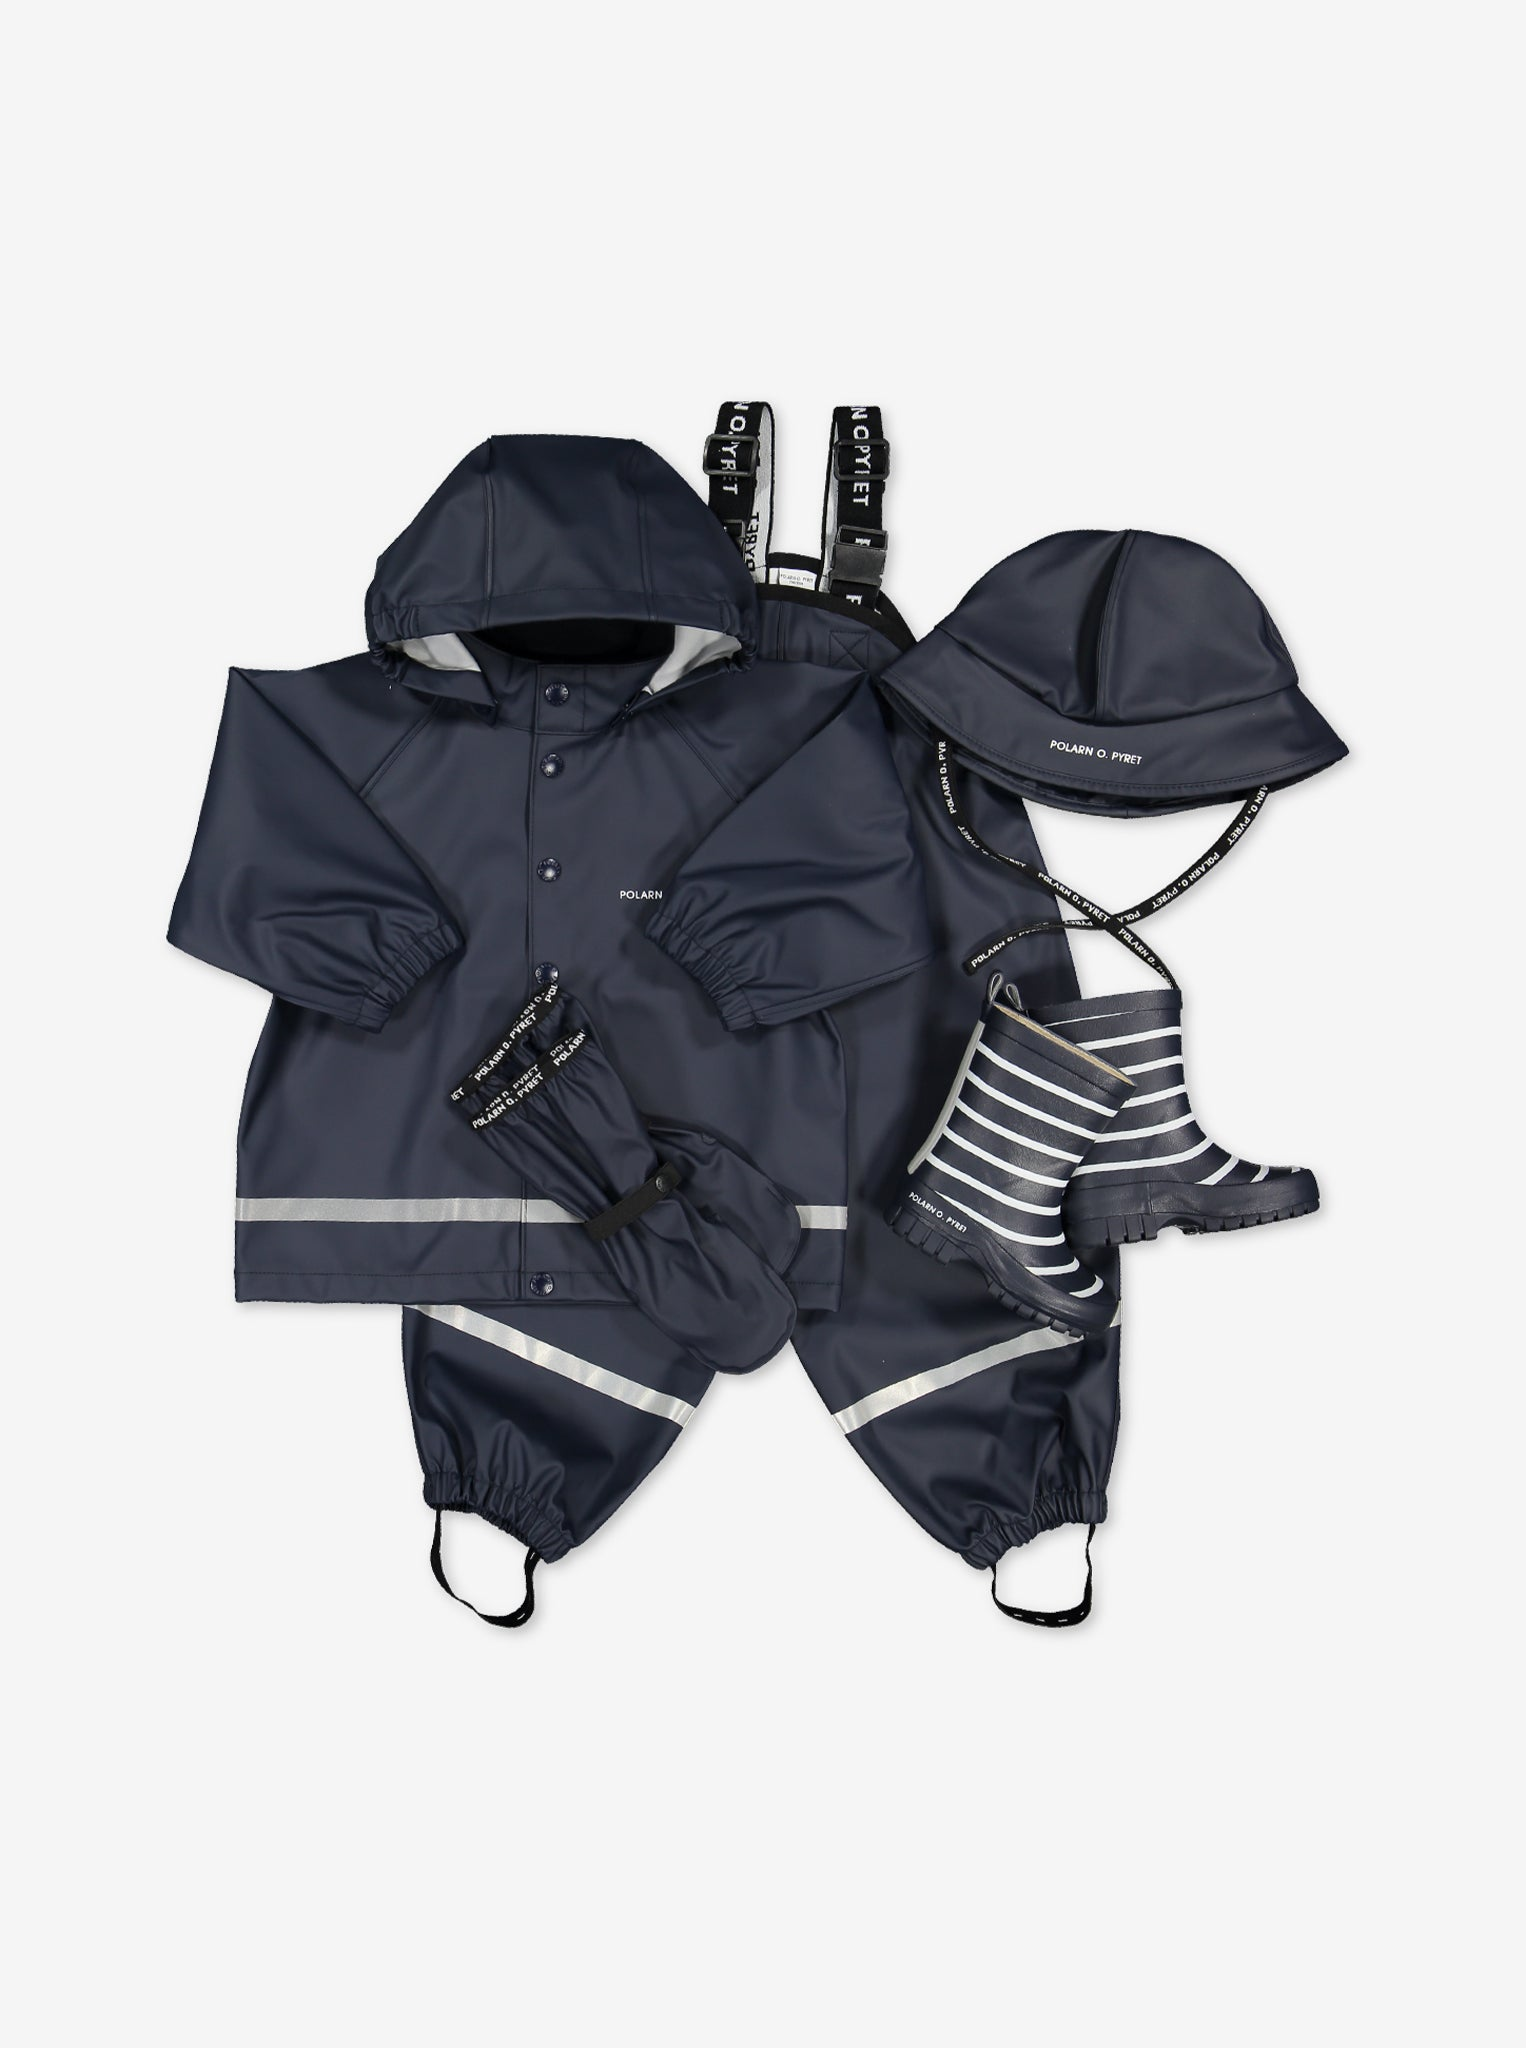 Kids outerwear set for rainy season, includes a navy, waterproof kids raincoat, rain trousers, rain hat and rain boots.